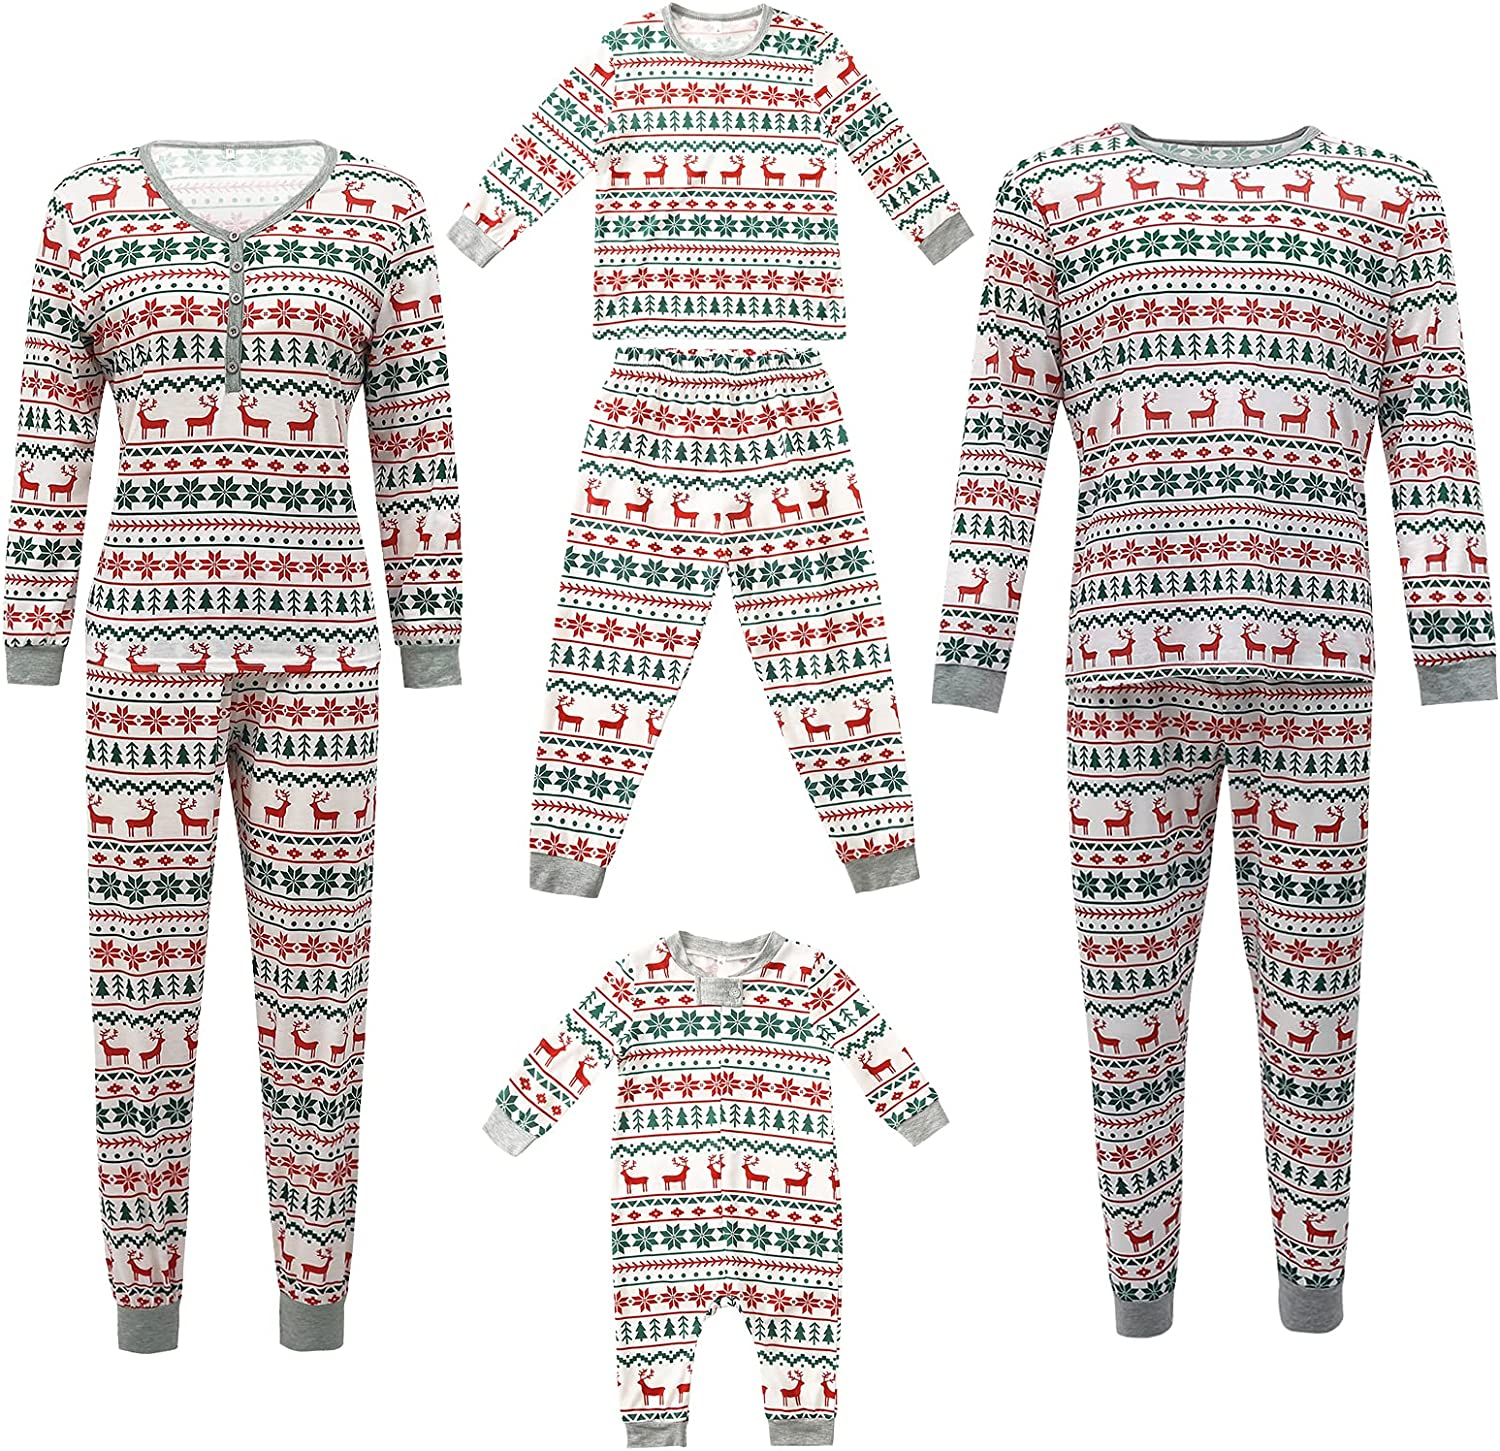 Matching Family Max 48% OFF Pajamas Sets Christmas Mail order Tree PJ's with